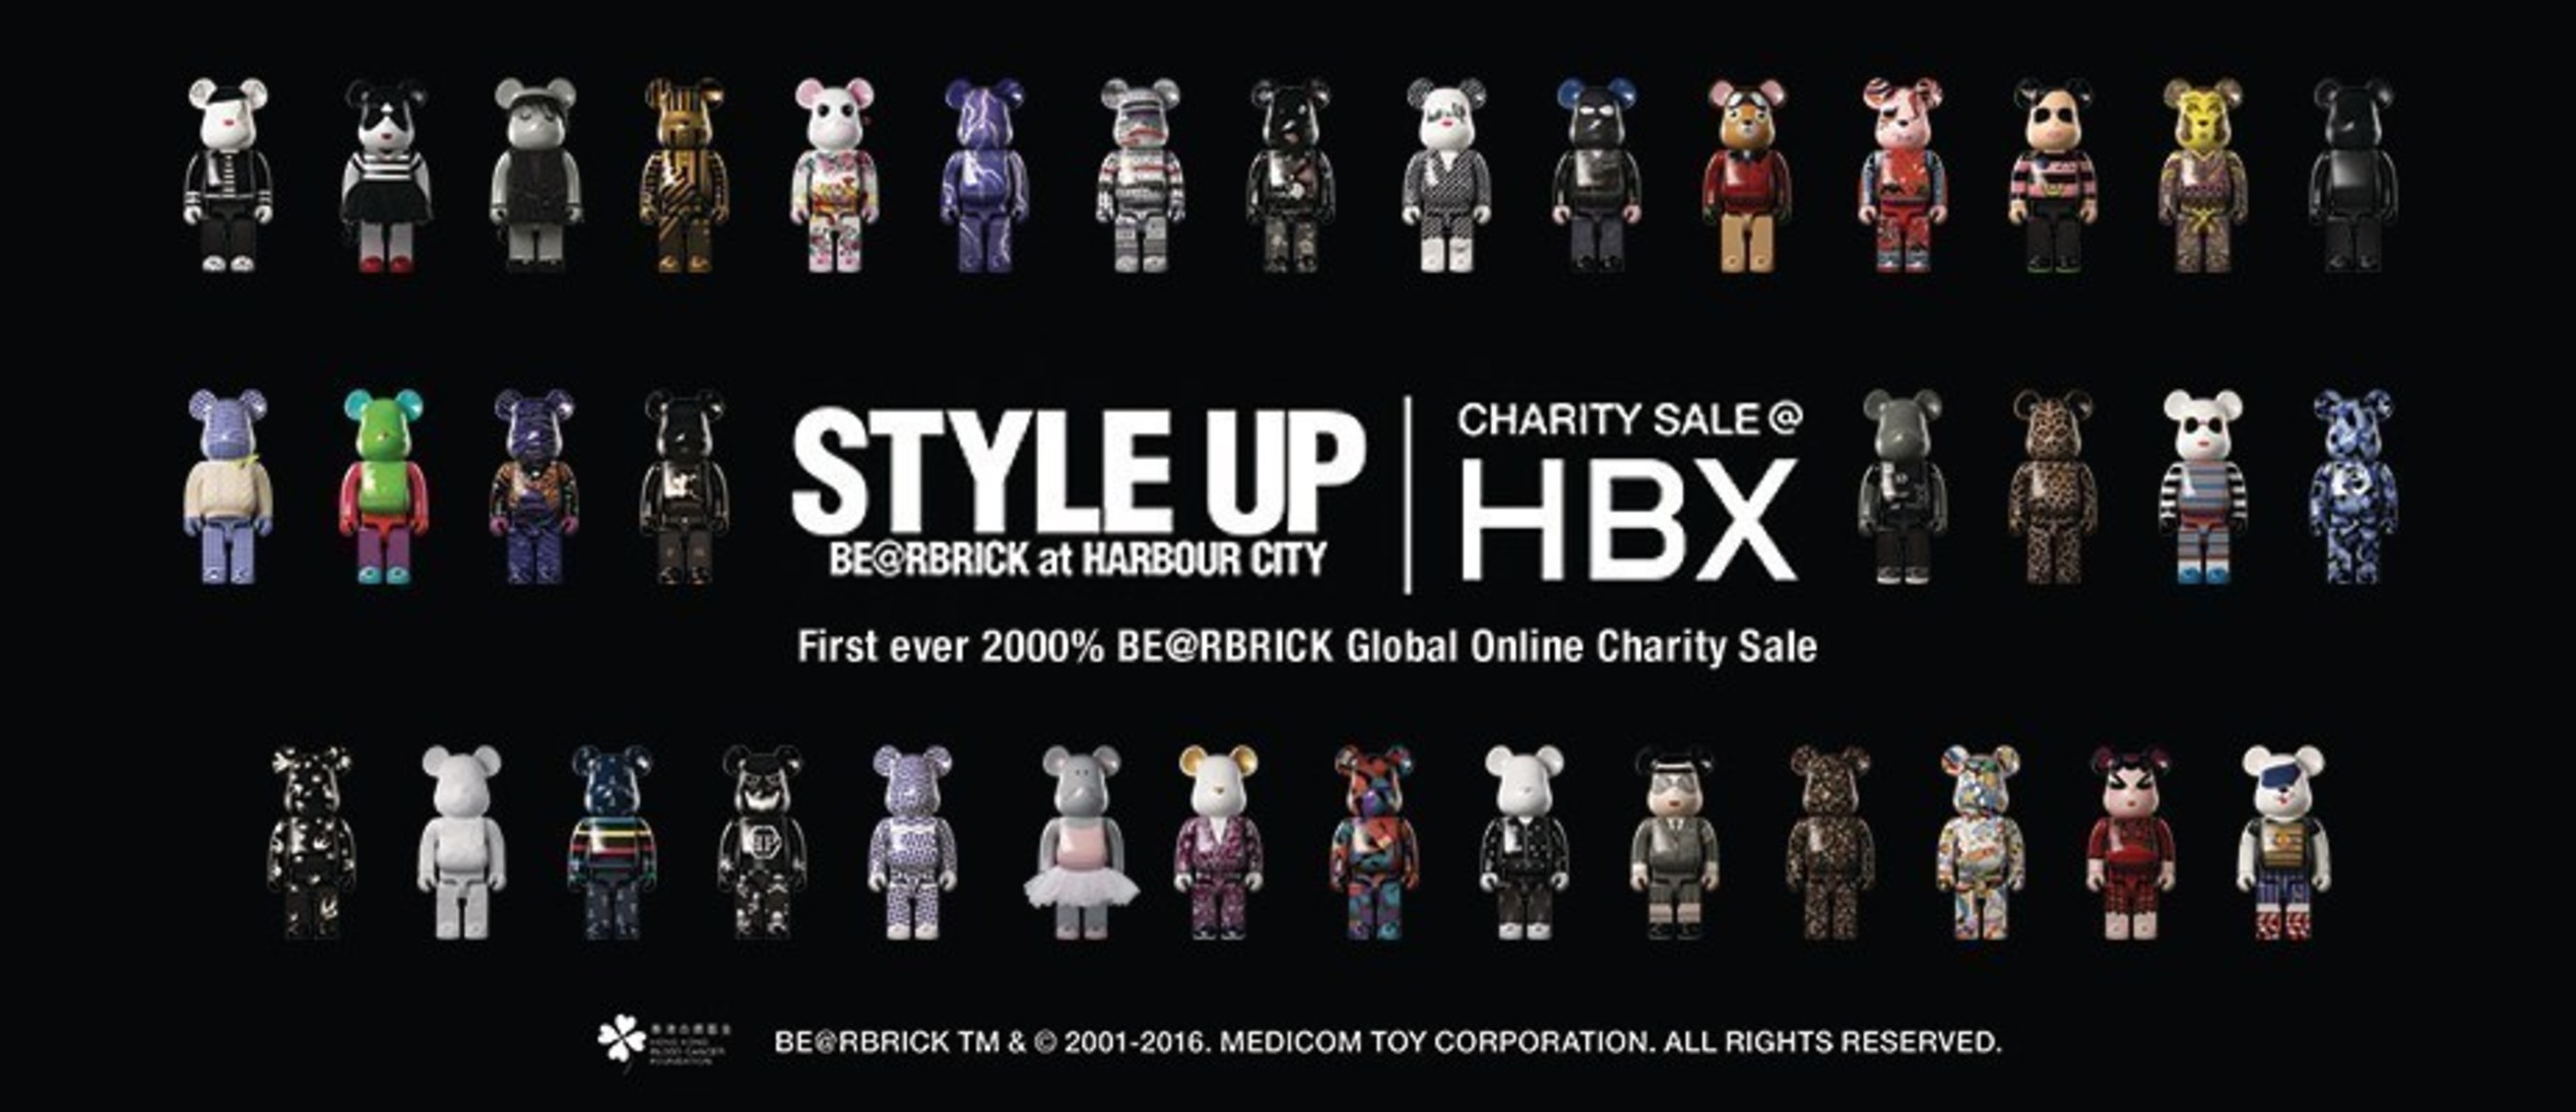 0e890a7d First Ever 2000% BE@RBRICK Global Online Charity Sale